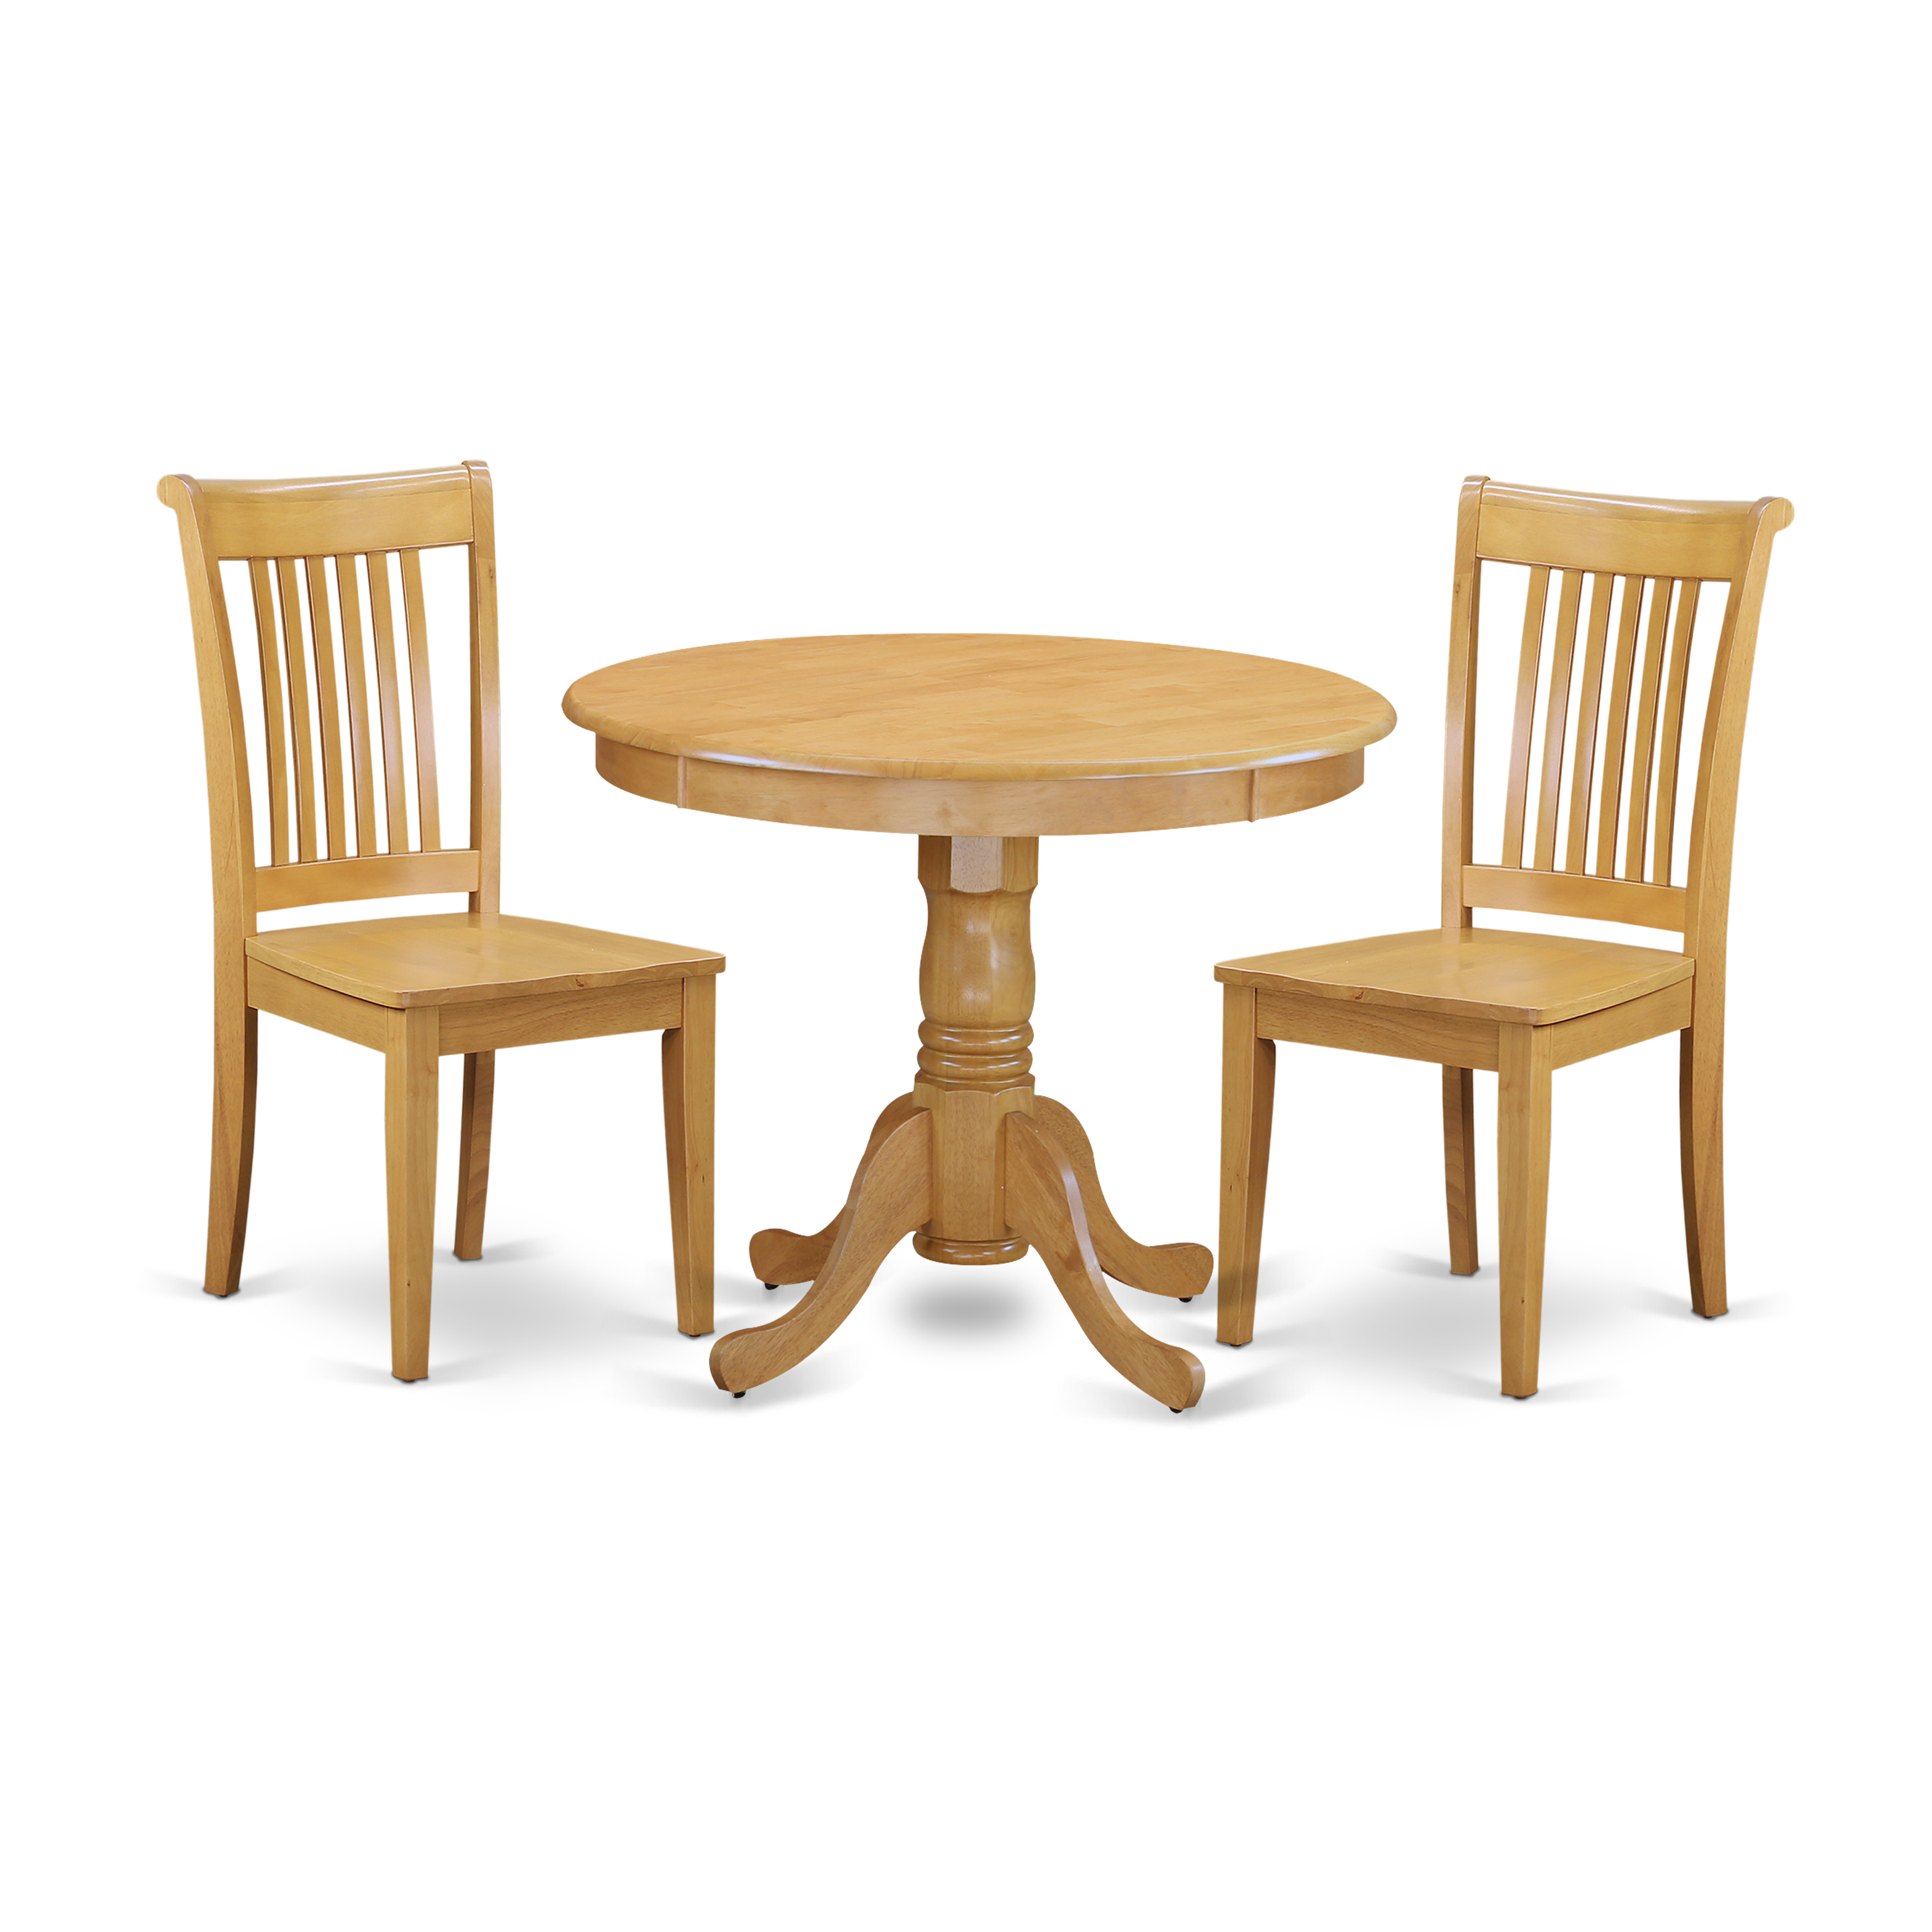 Oak Kitchen Table Chairs: East West Furniture ANPO3-OAK-W 3 Pc Kitchen Table Set